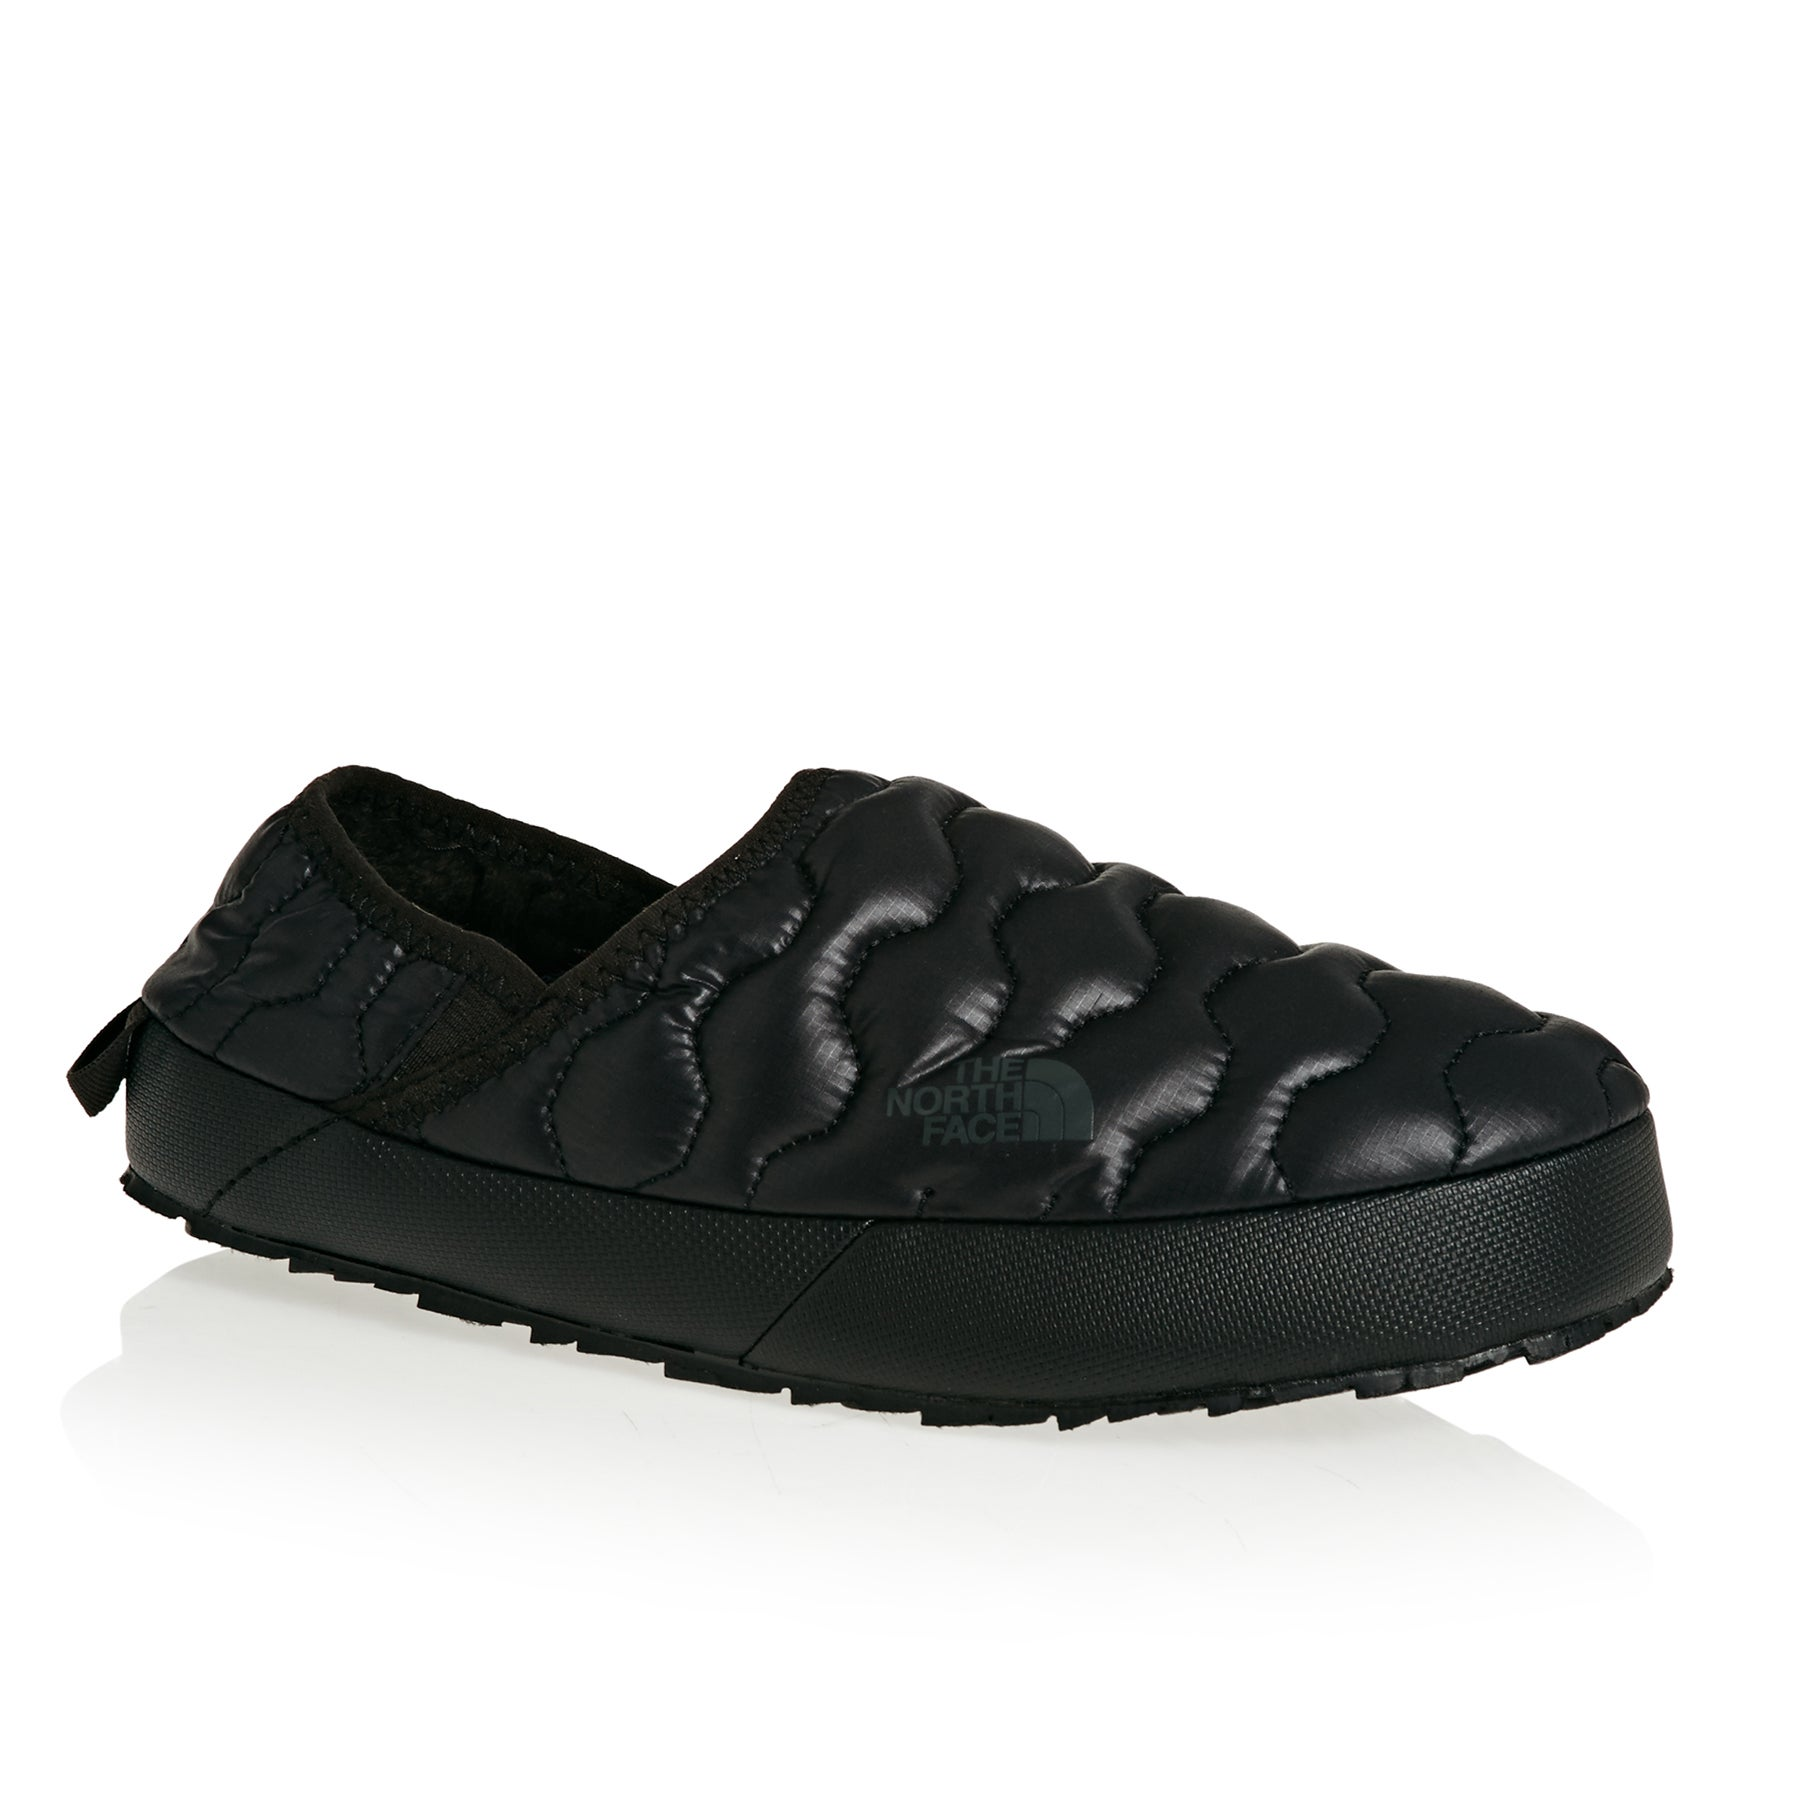 North Face Thermoball Traction Mule IV Womens Slippers - Shiny TNF Black Beluga Grey